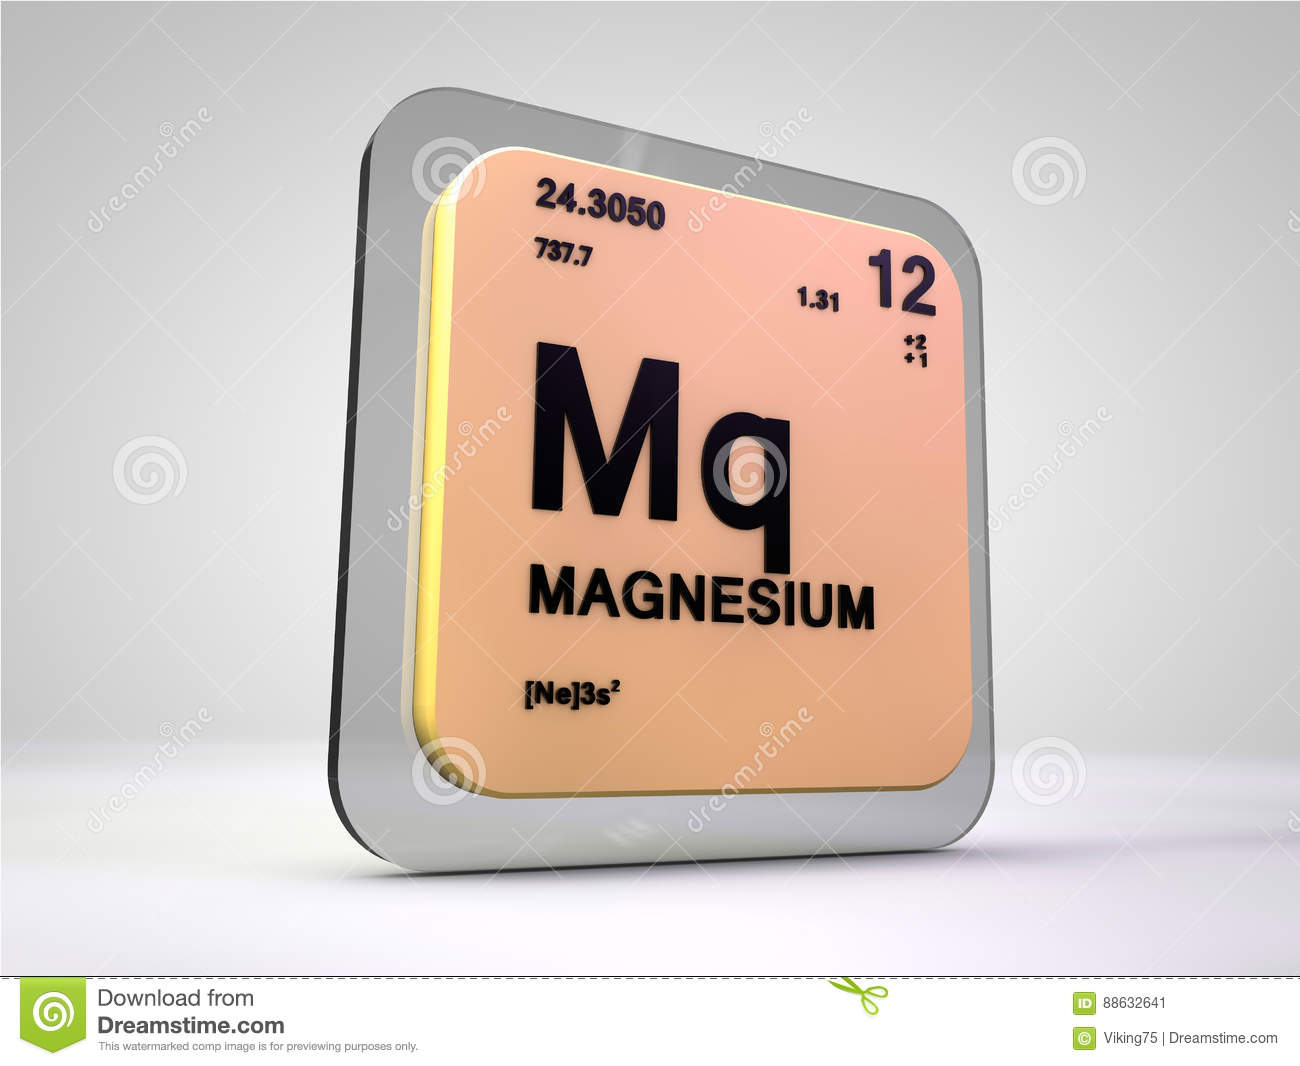 Magnesium mq chemical element periodic table stock magnesium mq chemical element periodic table gamestrikefo Gallery